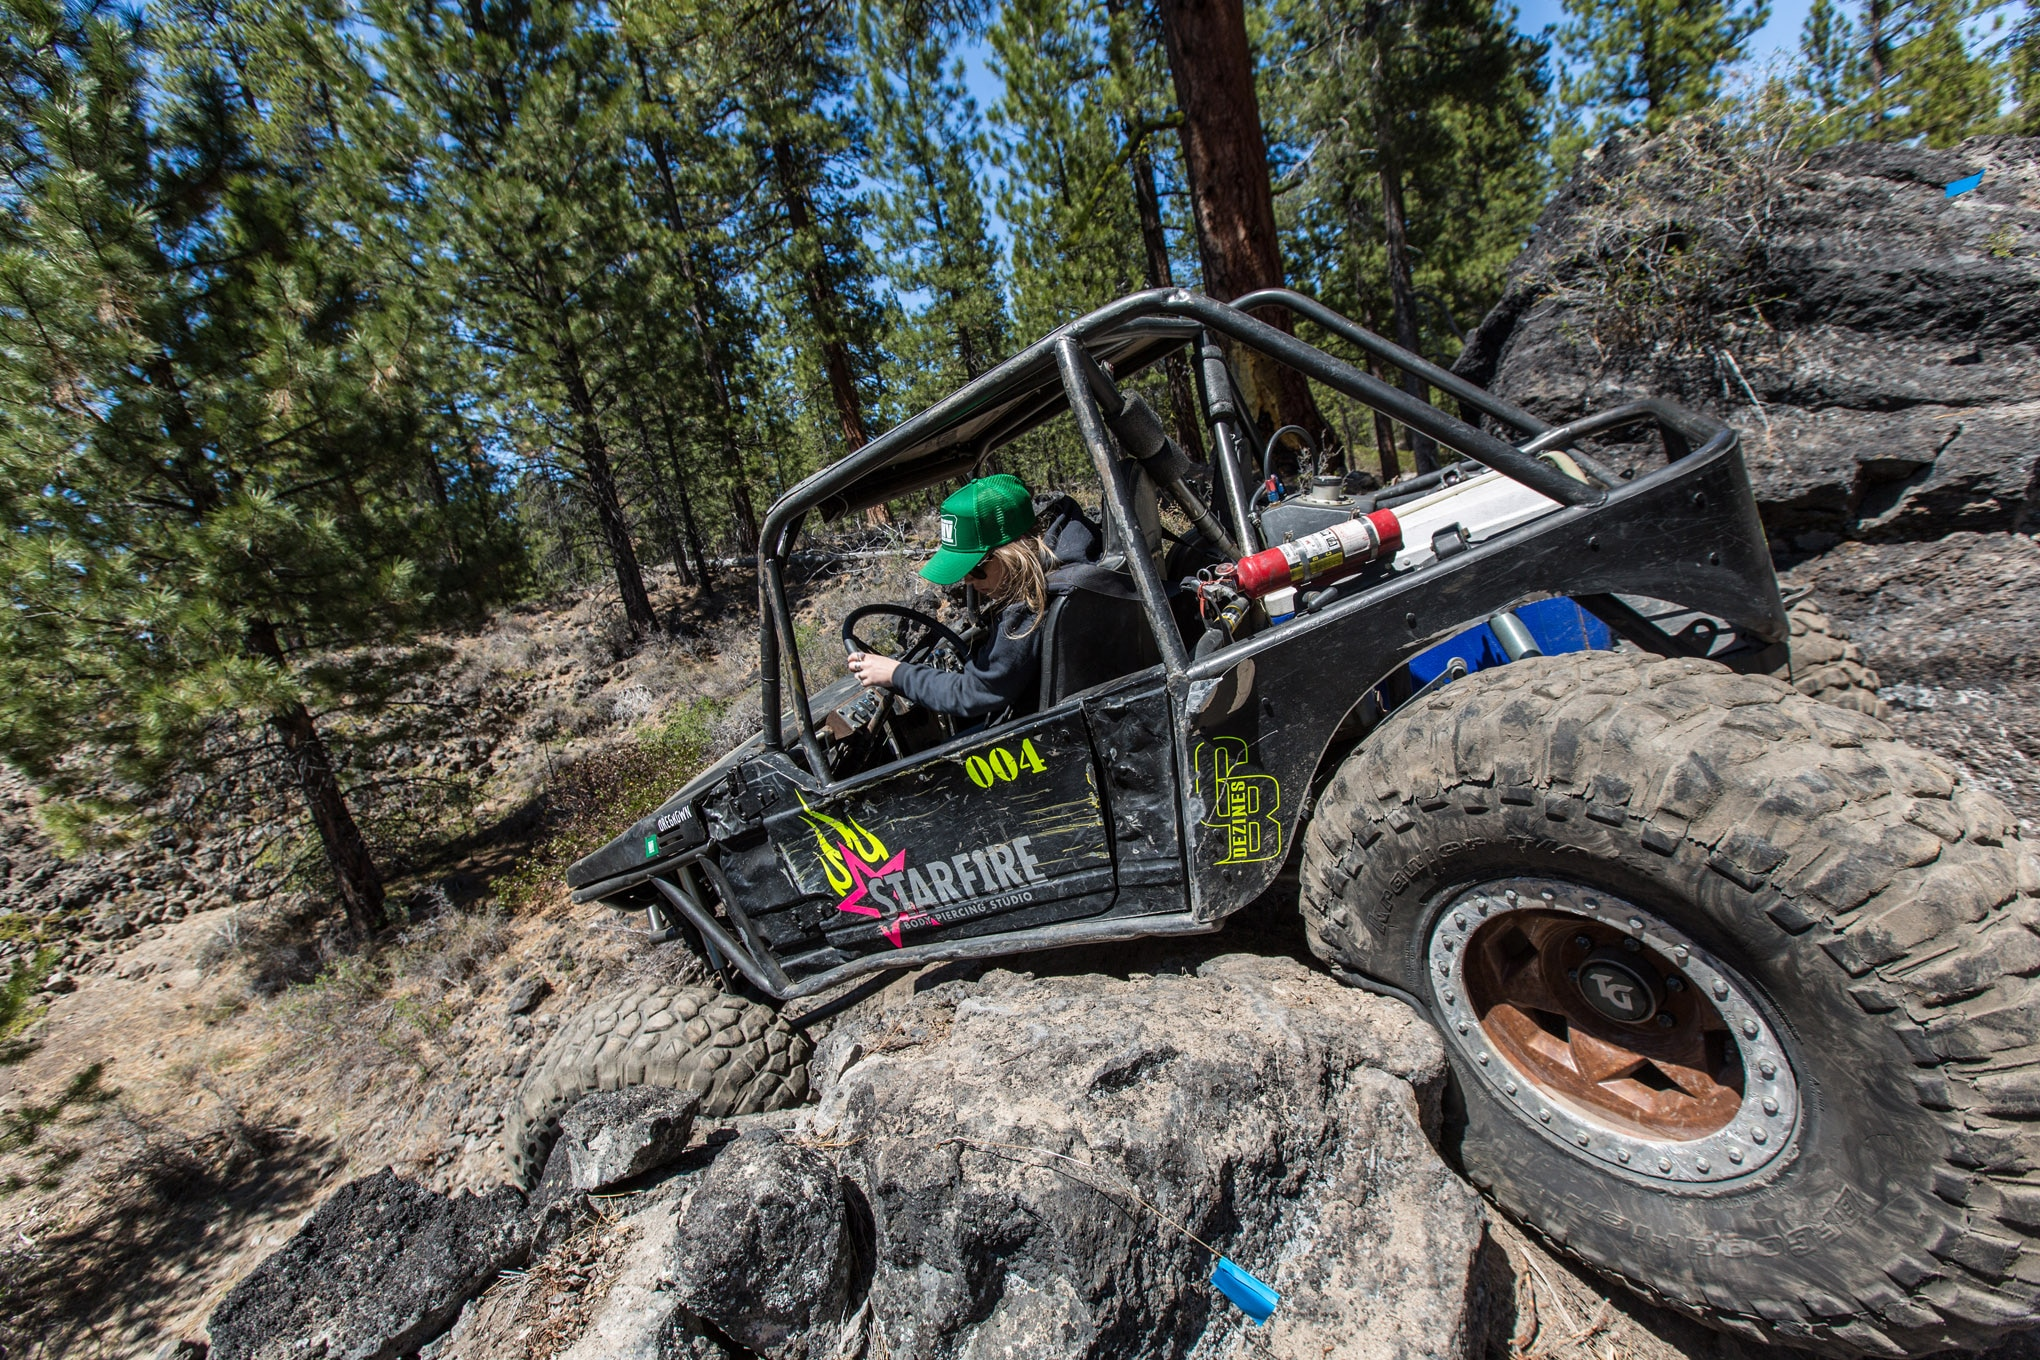 Kaitlin Tyde's well-used Samurai buggy has front- and rear-steering 9-inch axles with Dana 60 knuckles. A turbo 1.6L is lightweight yet makes enough power to spin the sticky 39-inch BFGoodrich Krawlers on Trail-Gear Creeper wheels.